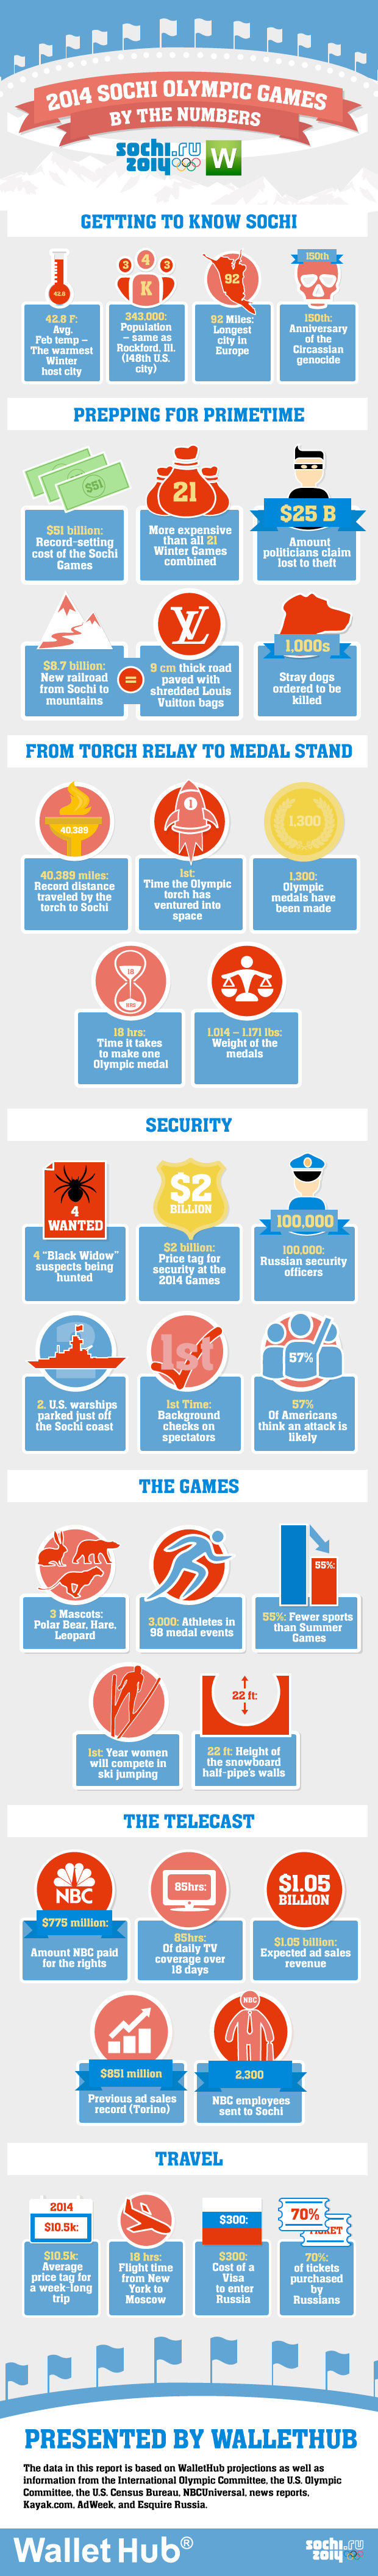 Sochi Olympics Numbers WalletHub Infographic